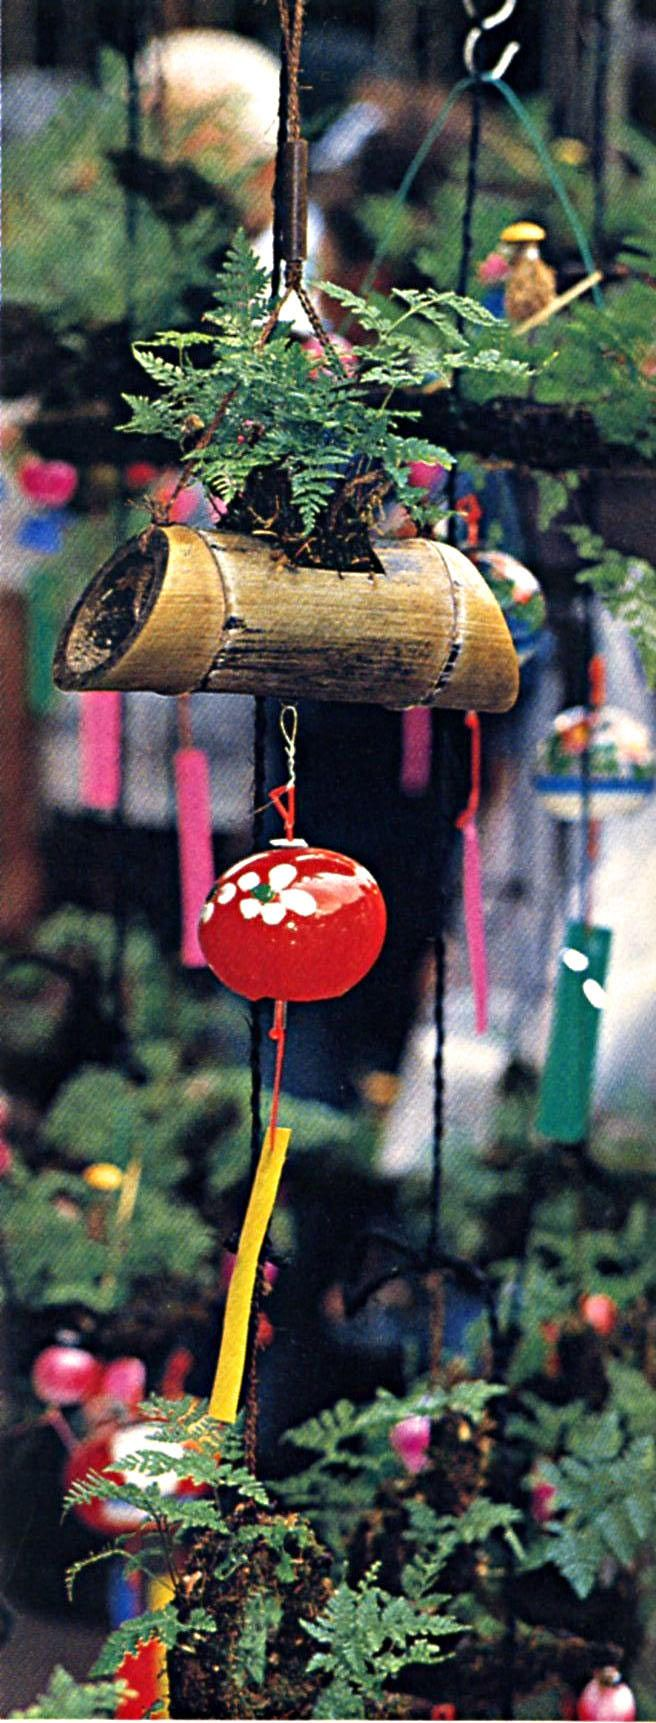 Glass wind chime with bamboo